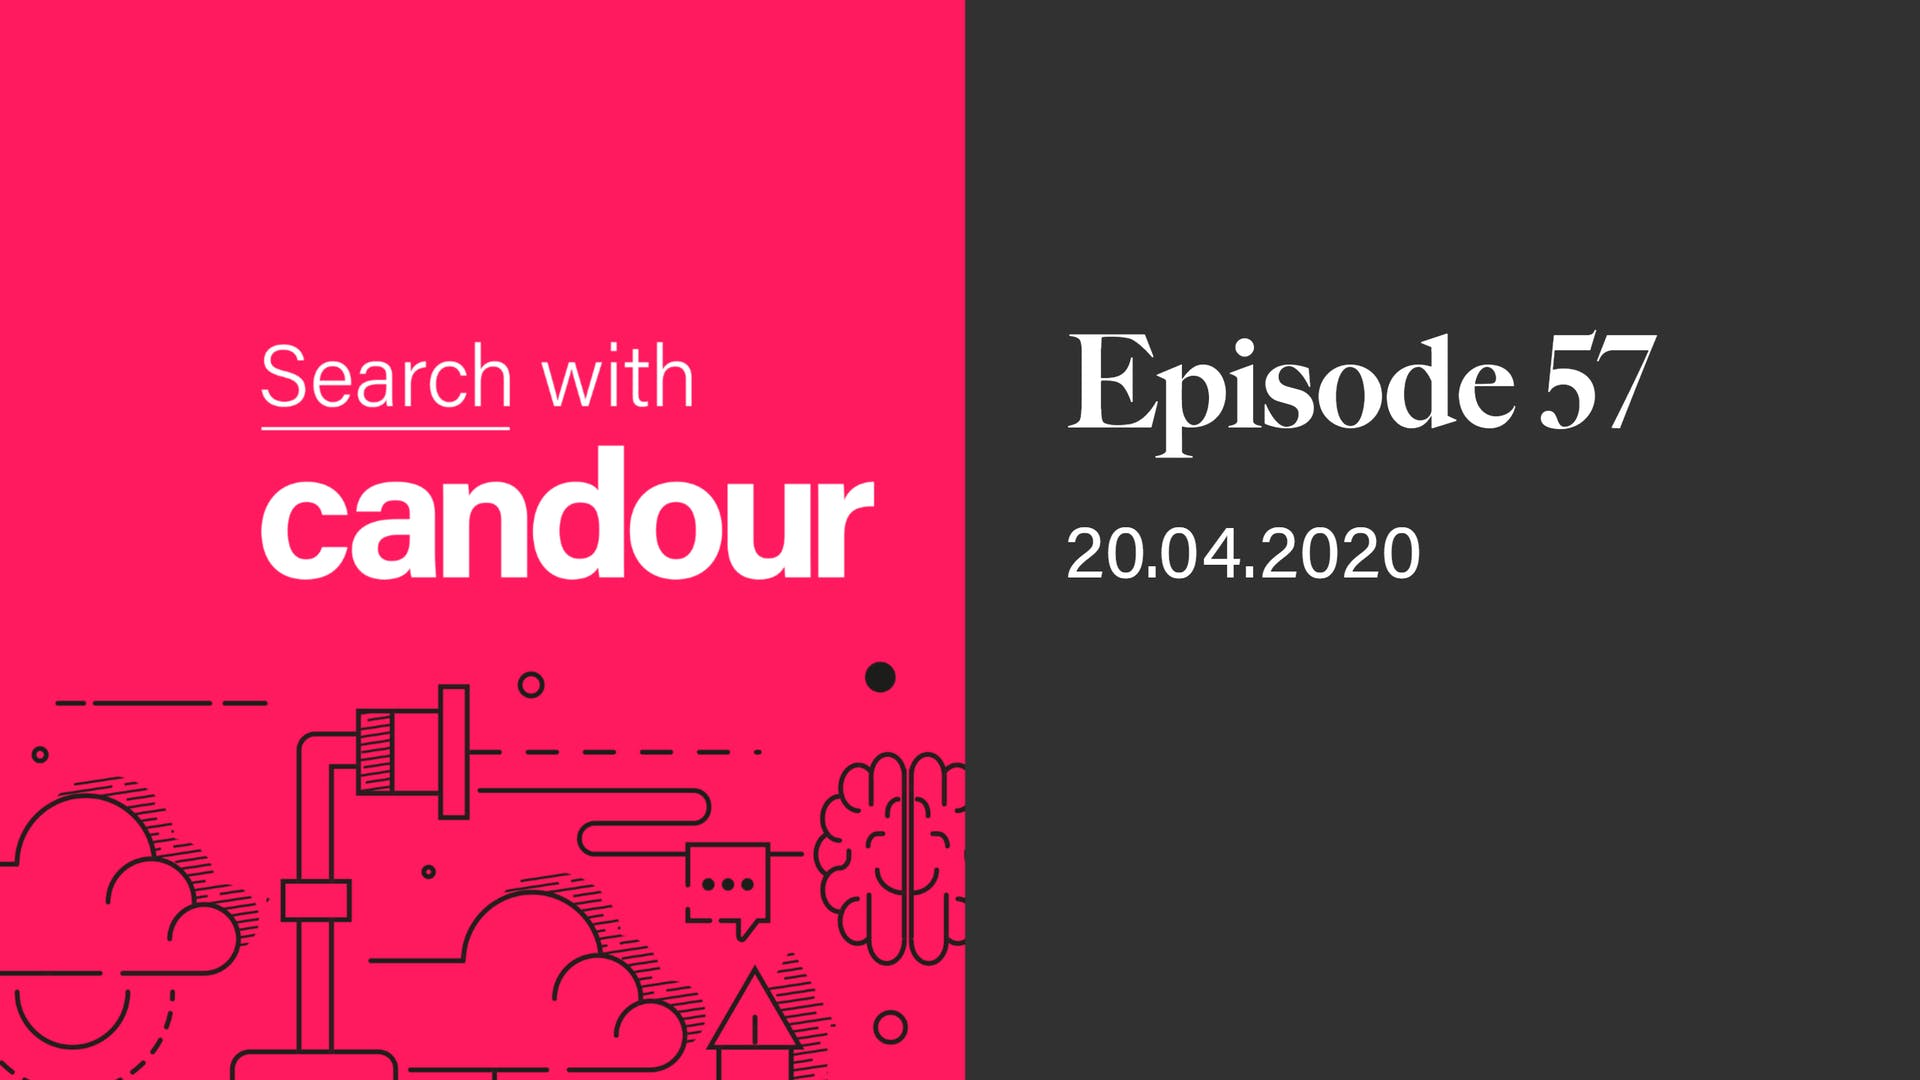 Search with Candour - Episode 57